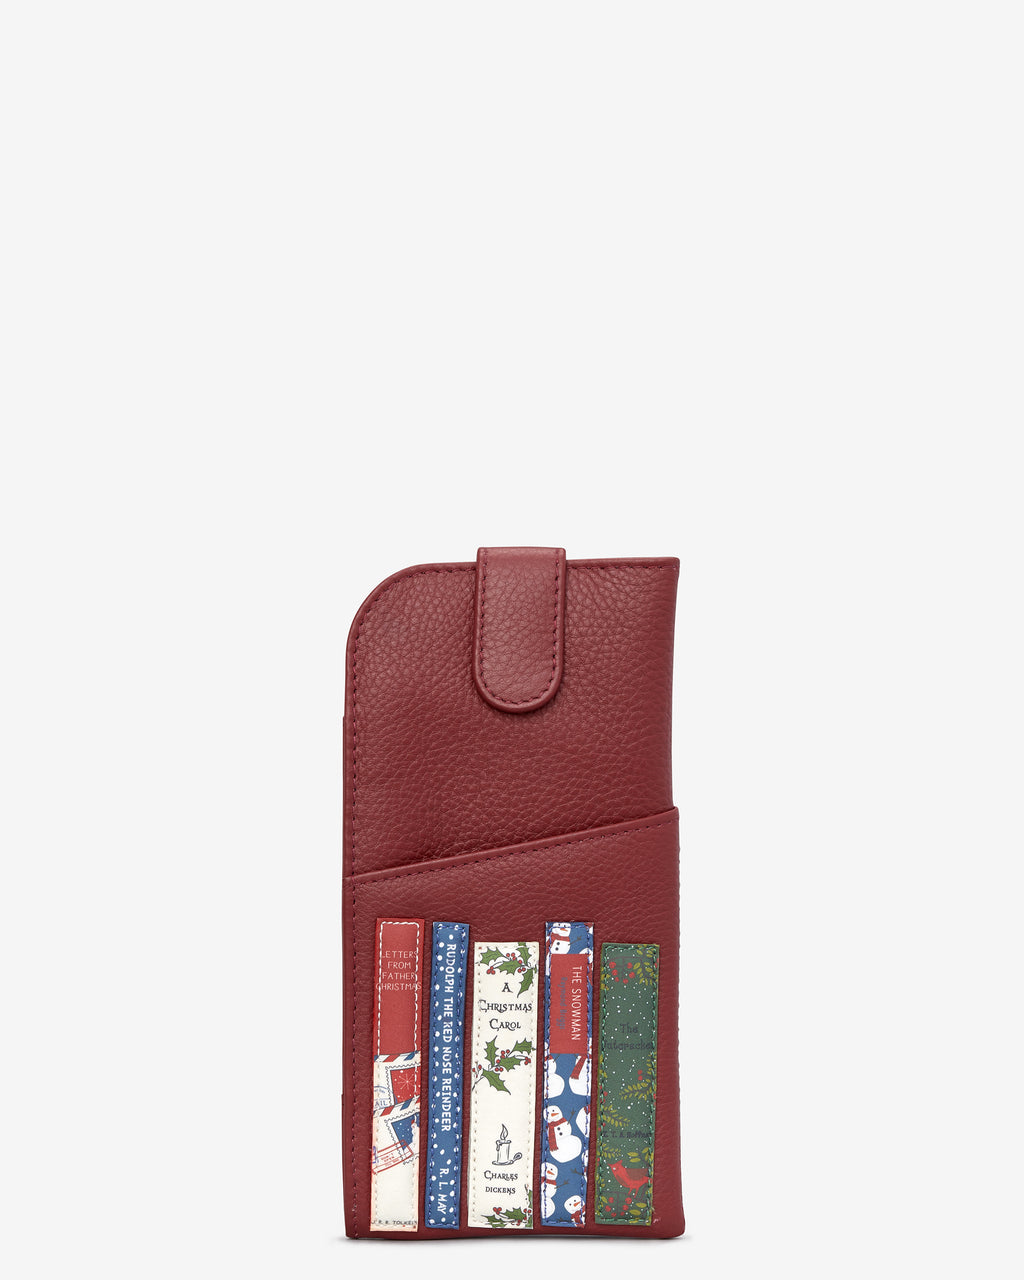 Christmas Bookworm Library Leather Glasses Case